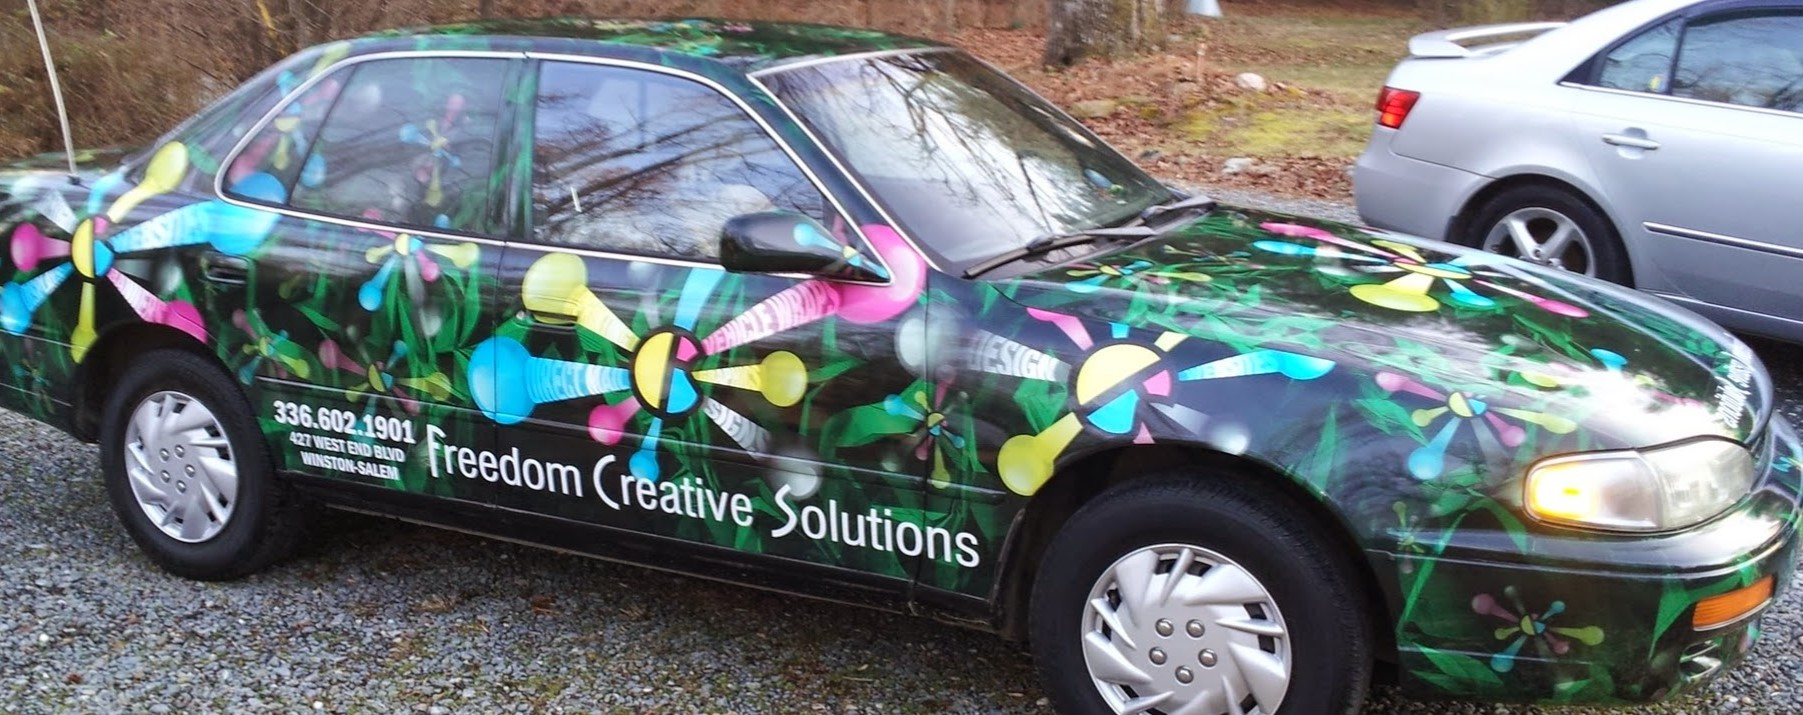 freedom-creative-solutions-car-vehicle-left-side-view-full-wrap